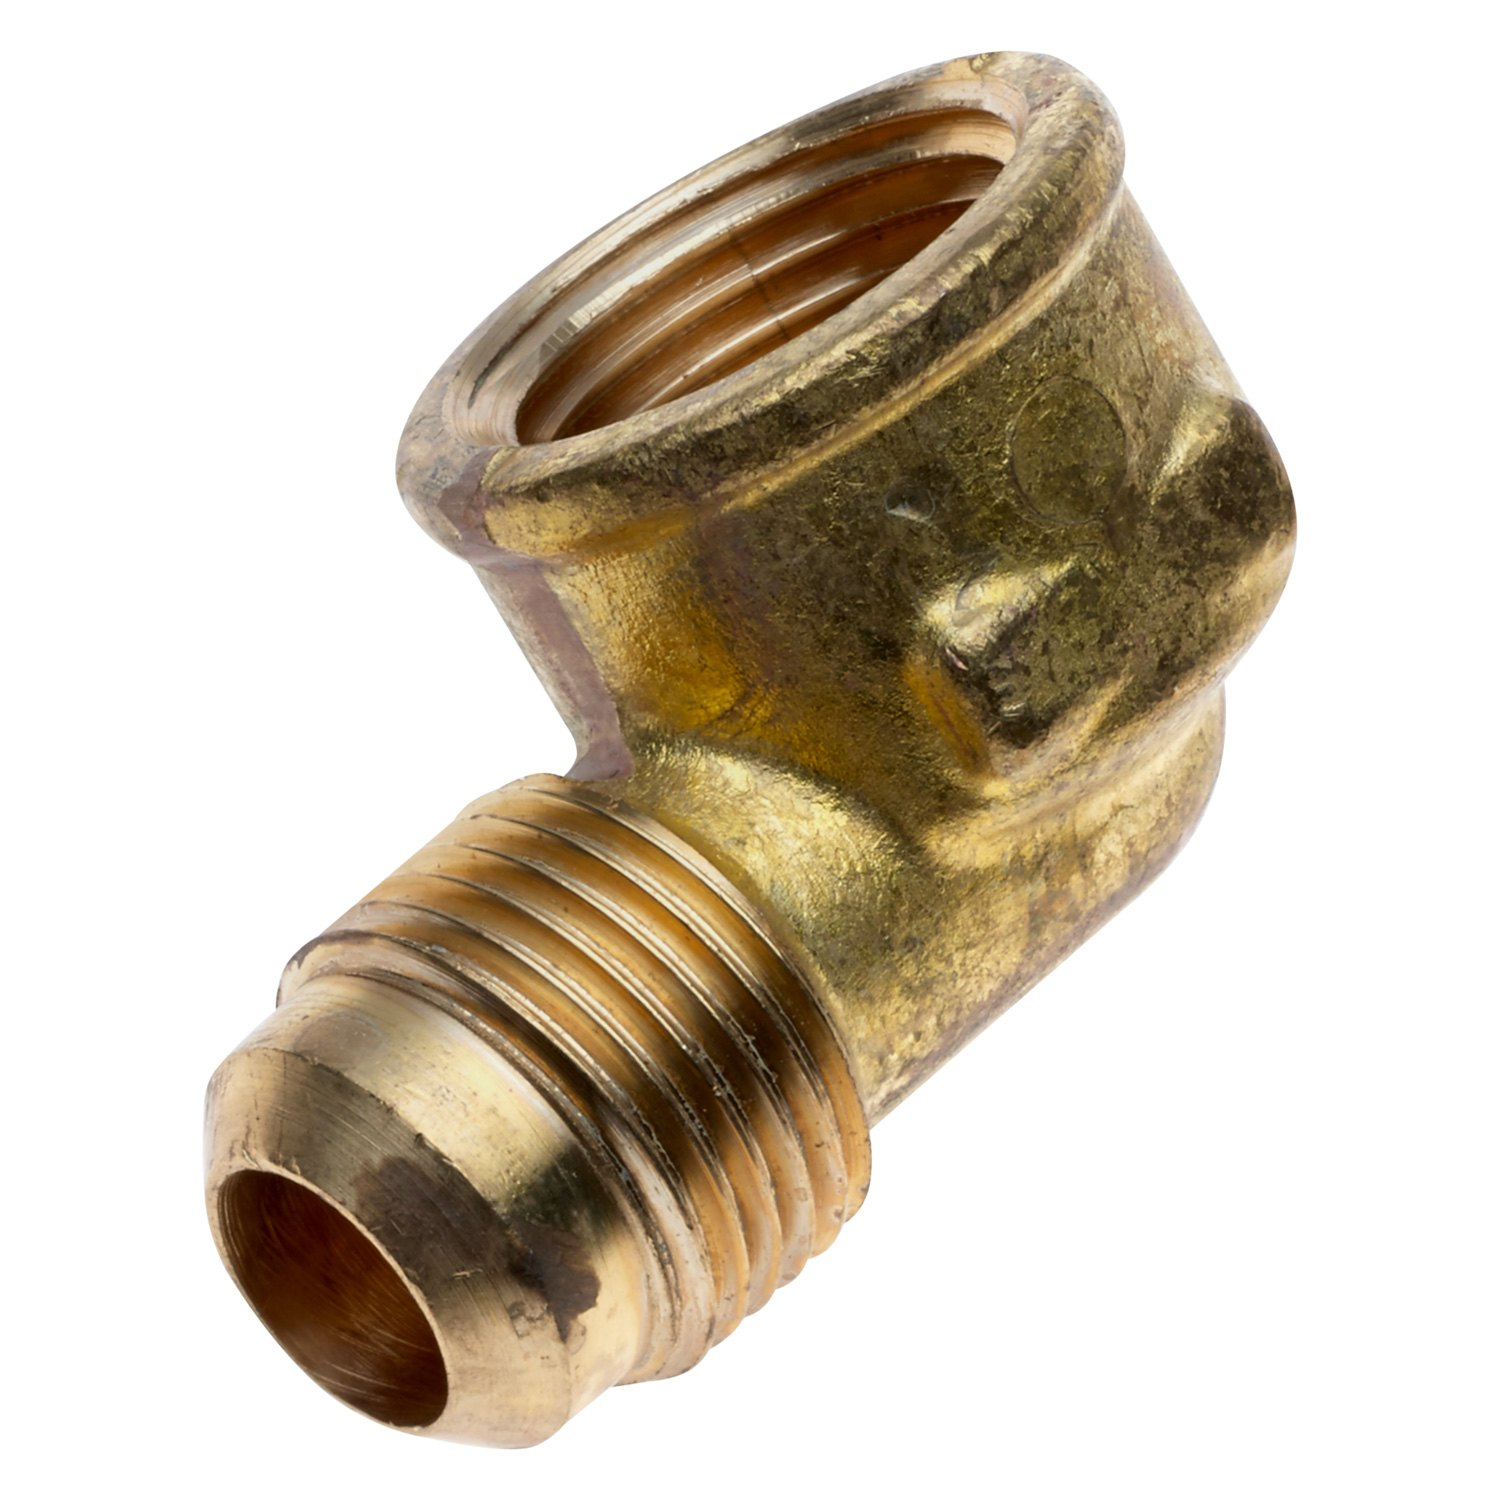 Flare to Female Pipe Flare and Female Pipe Connector Brass Parker 46F-10-12-pk20 45 Degree Fitting Pack of 20 5//8 and 3//4